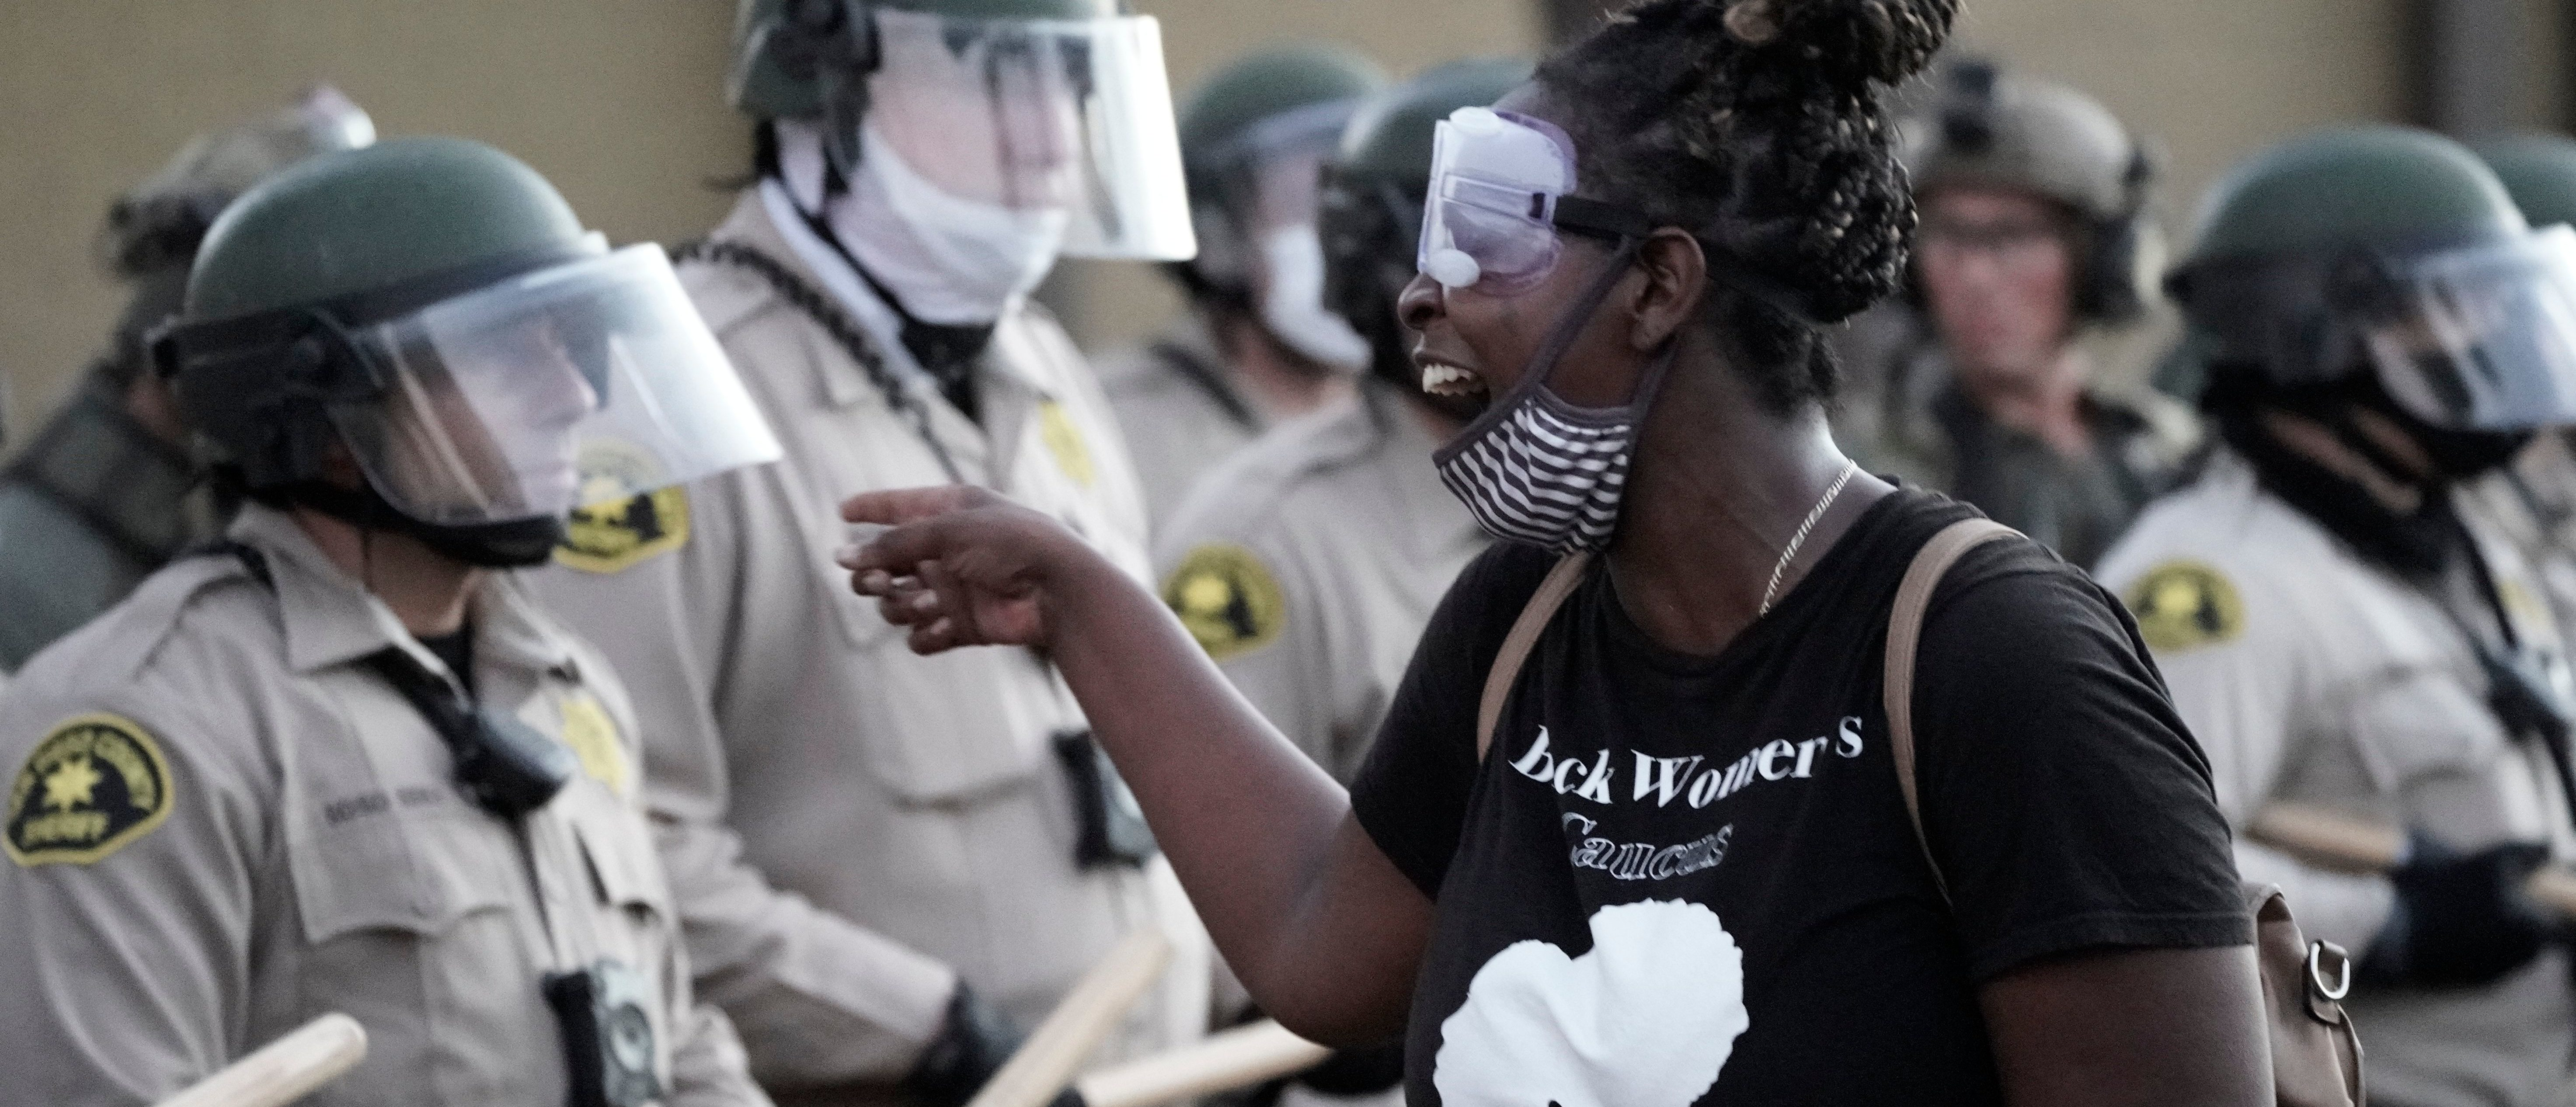 A demonstrator shouts at San Diego Sheriff Department deputies during a Black Lives Matter protest against racial injustice and police brutality in La Mesa, California, on August 1, 2020. (Photo by Bing GUAN / AFP) (Photo by BING GUAN/AFP via Getty Images)